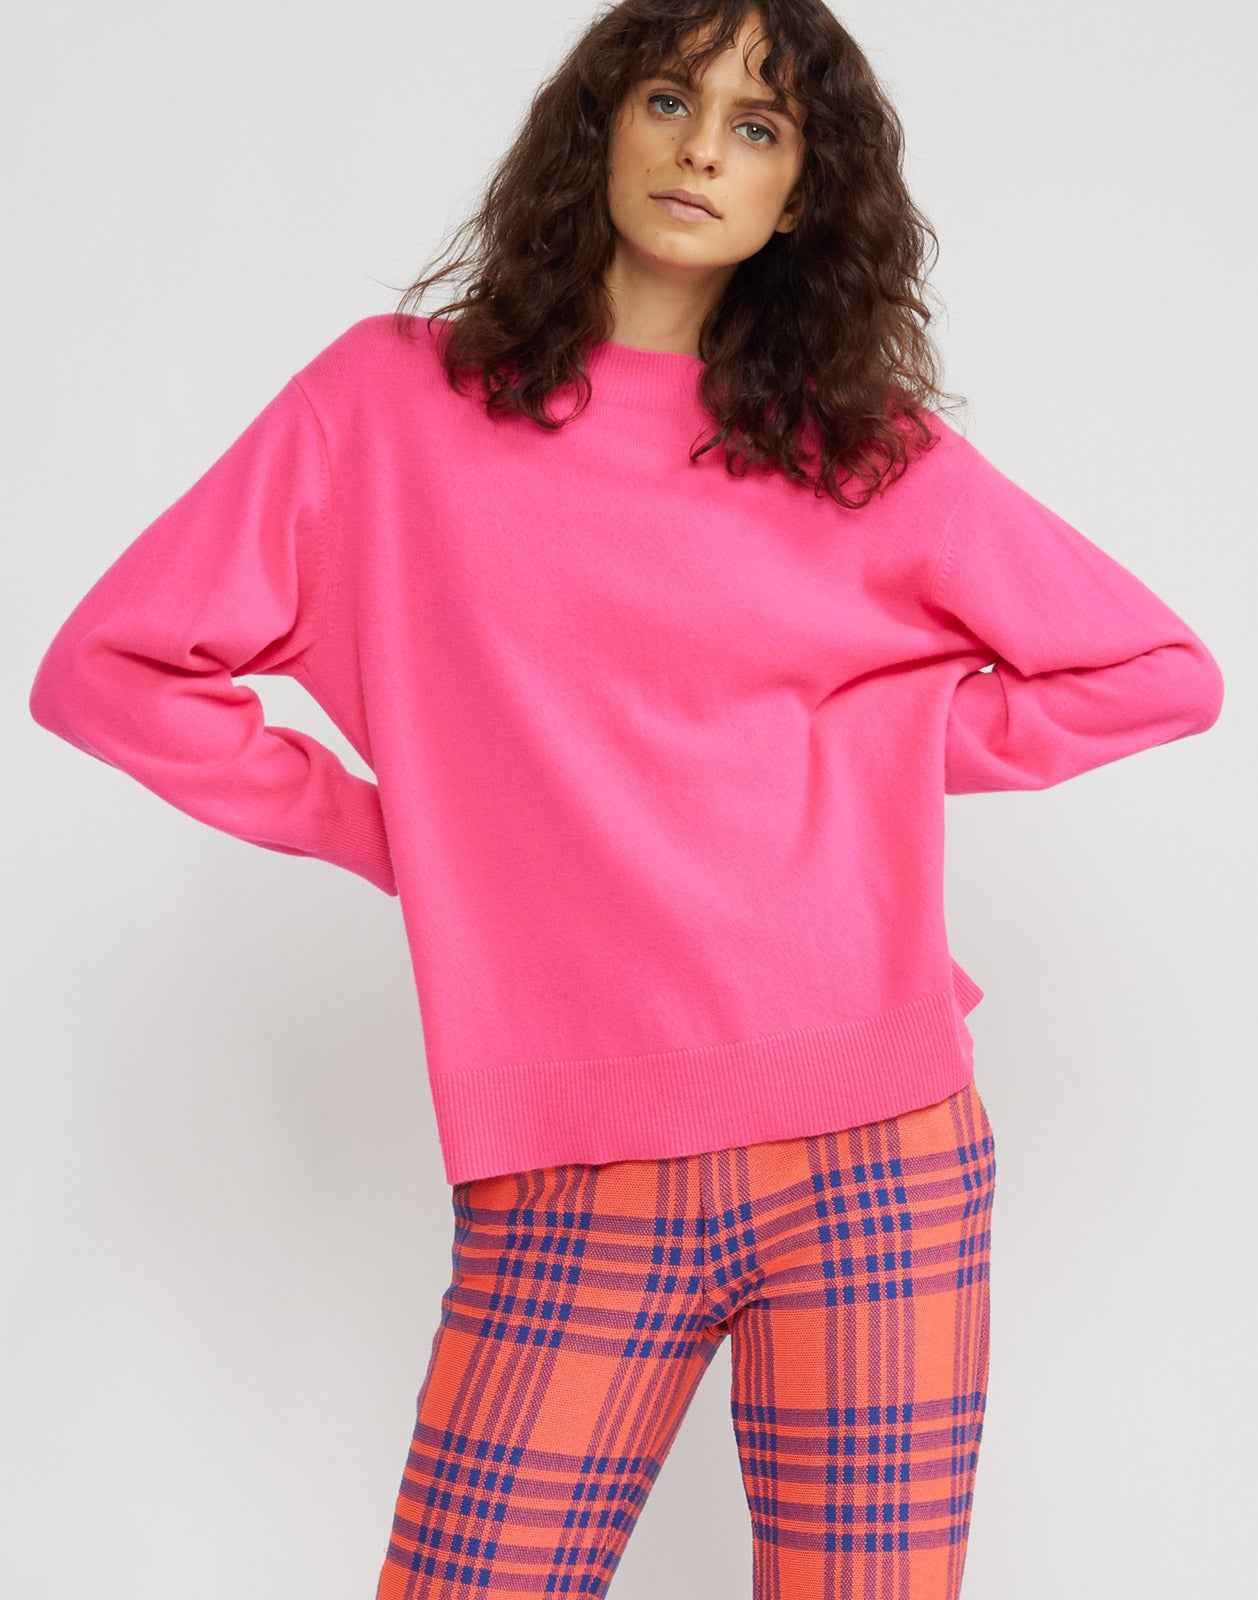 Alternate front view of model wearing Anna cashmere sweater in fuchsia.